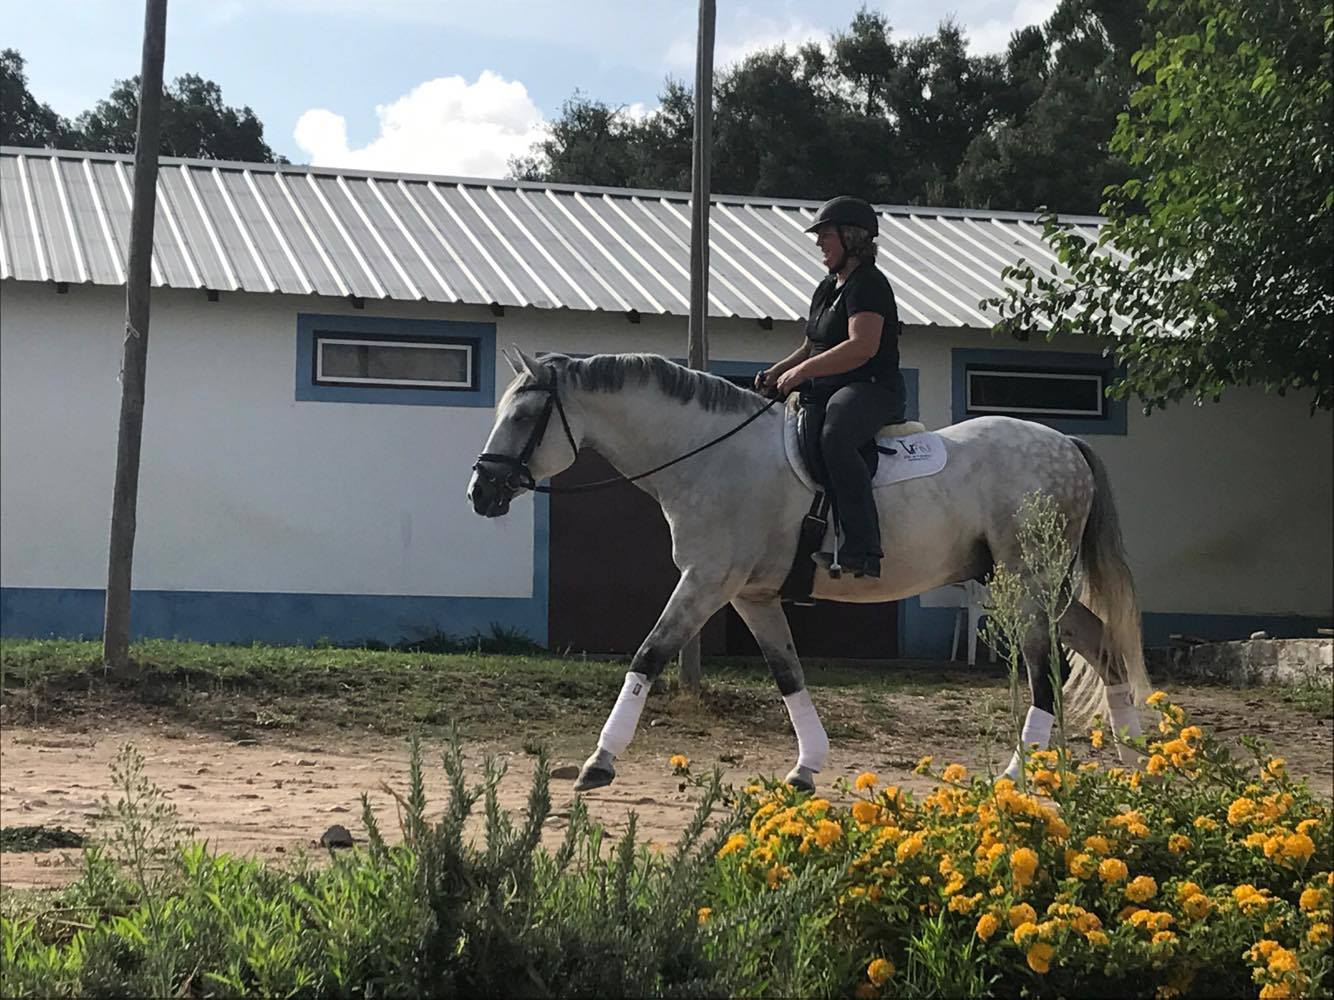 In 2017, I bought a 10-yrs old PSL gelding (breeder Mario Vinhas) in Portugal. Even if this was the first time in my life to have a horse transported across Europe and therefore I have no live experience to compare with, Joao and his team did a job far beyond expectations. First of all, I was very lucky to get a place on the transport within very few days. The paperwork was properly and professionally handled by Joao and the previous owner. During the transport, I knew virtually at all times where my horse is and that everything is fine: during the day, at rest times and during night travels. No need to list up all perfect points, as there is not one point that gets less than six stars from me (Germany, Hanau). Thank you so much and keep up this excellent work!!